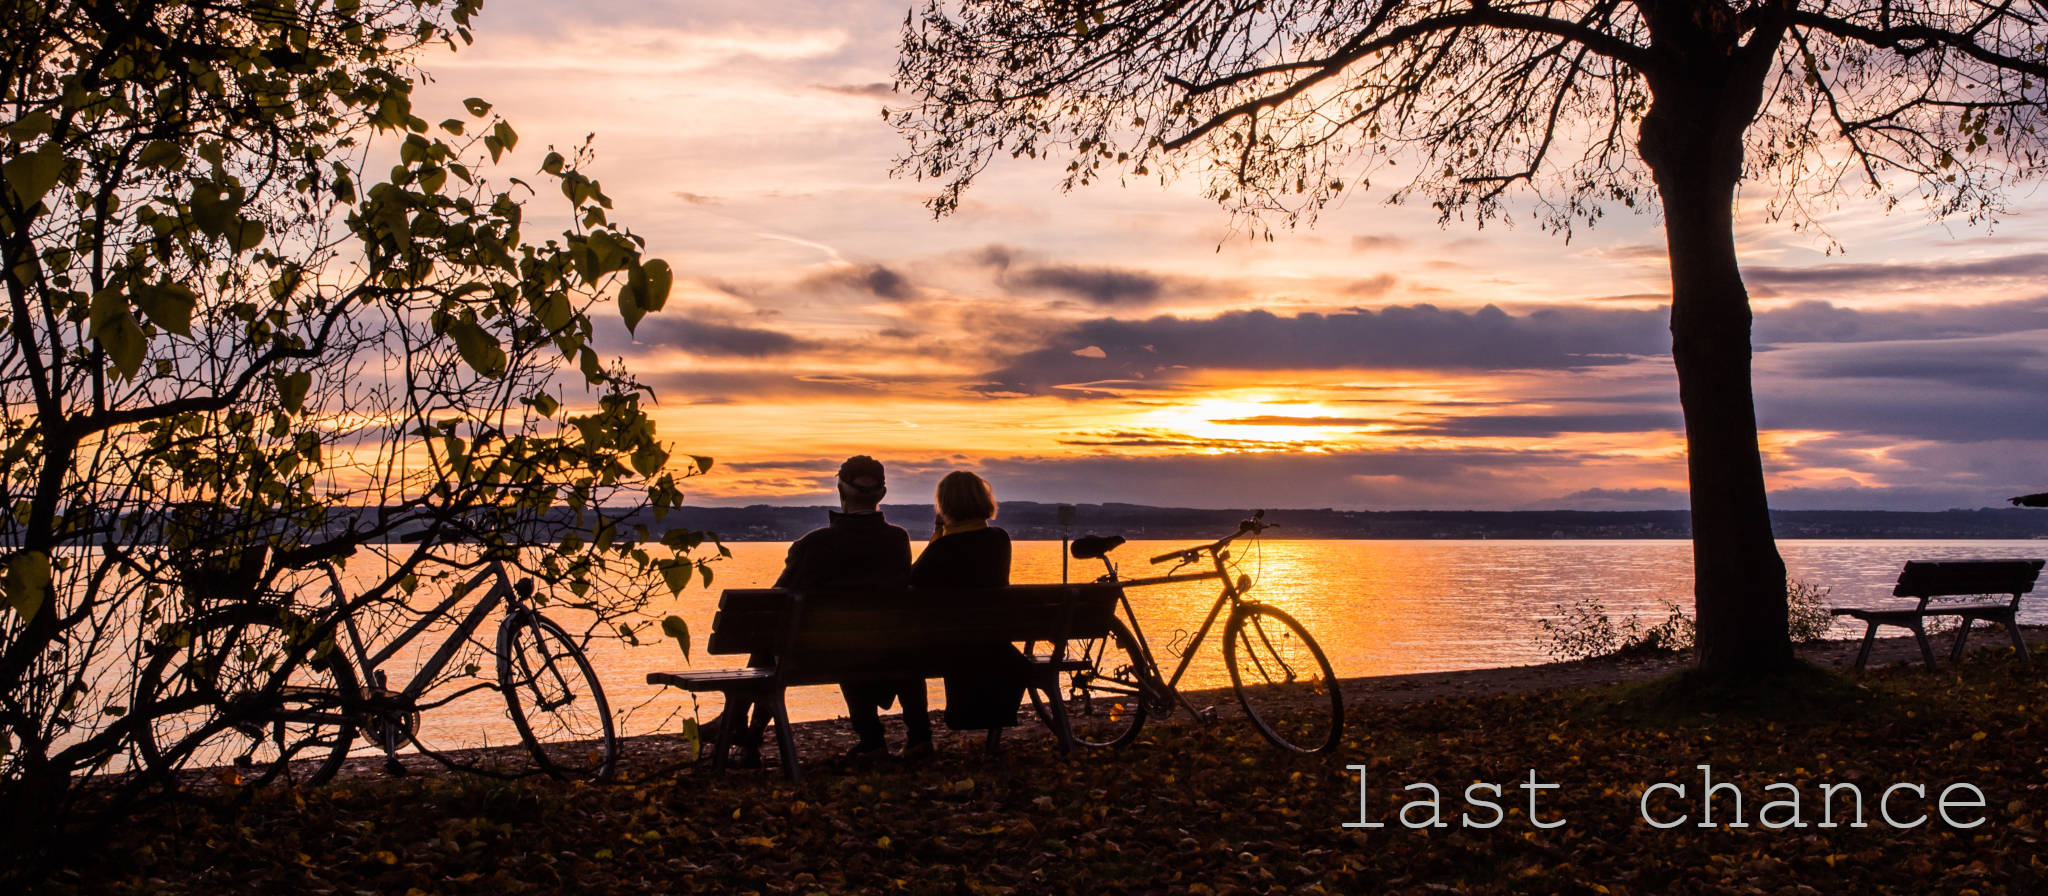 Upside Cyclestyle's Last Chance collection - man & woman with bicycles at lake during sunset